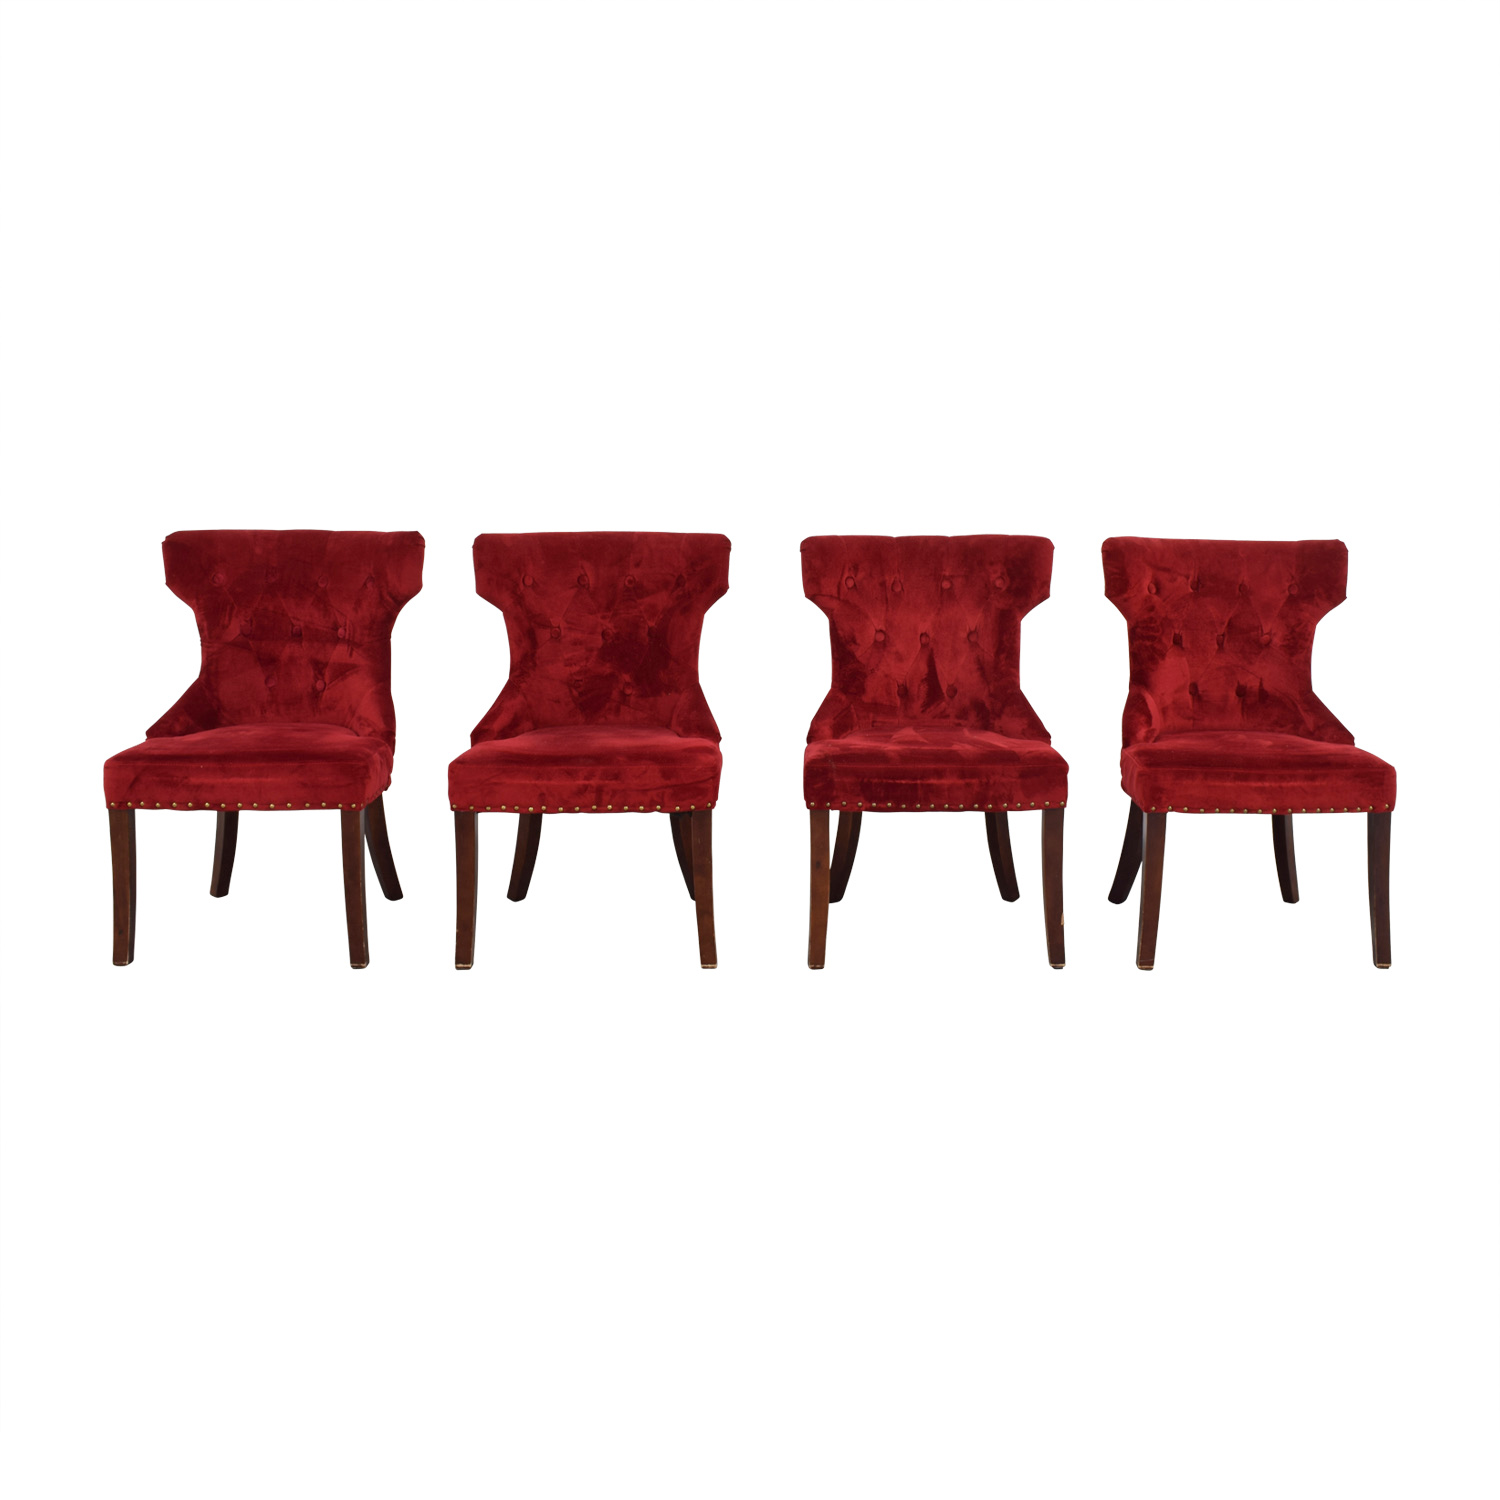 Groovy 50 Off Tufted Nailhead Red Velvet Dining Chairs Chairs Evergreenethics Interior Chair Design Evergreenethicsorg